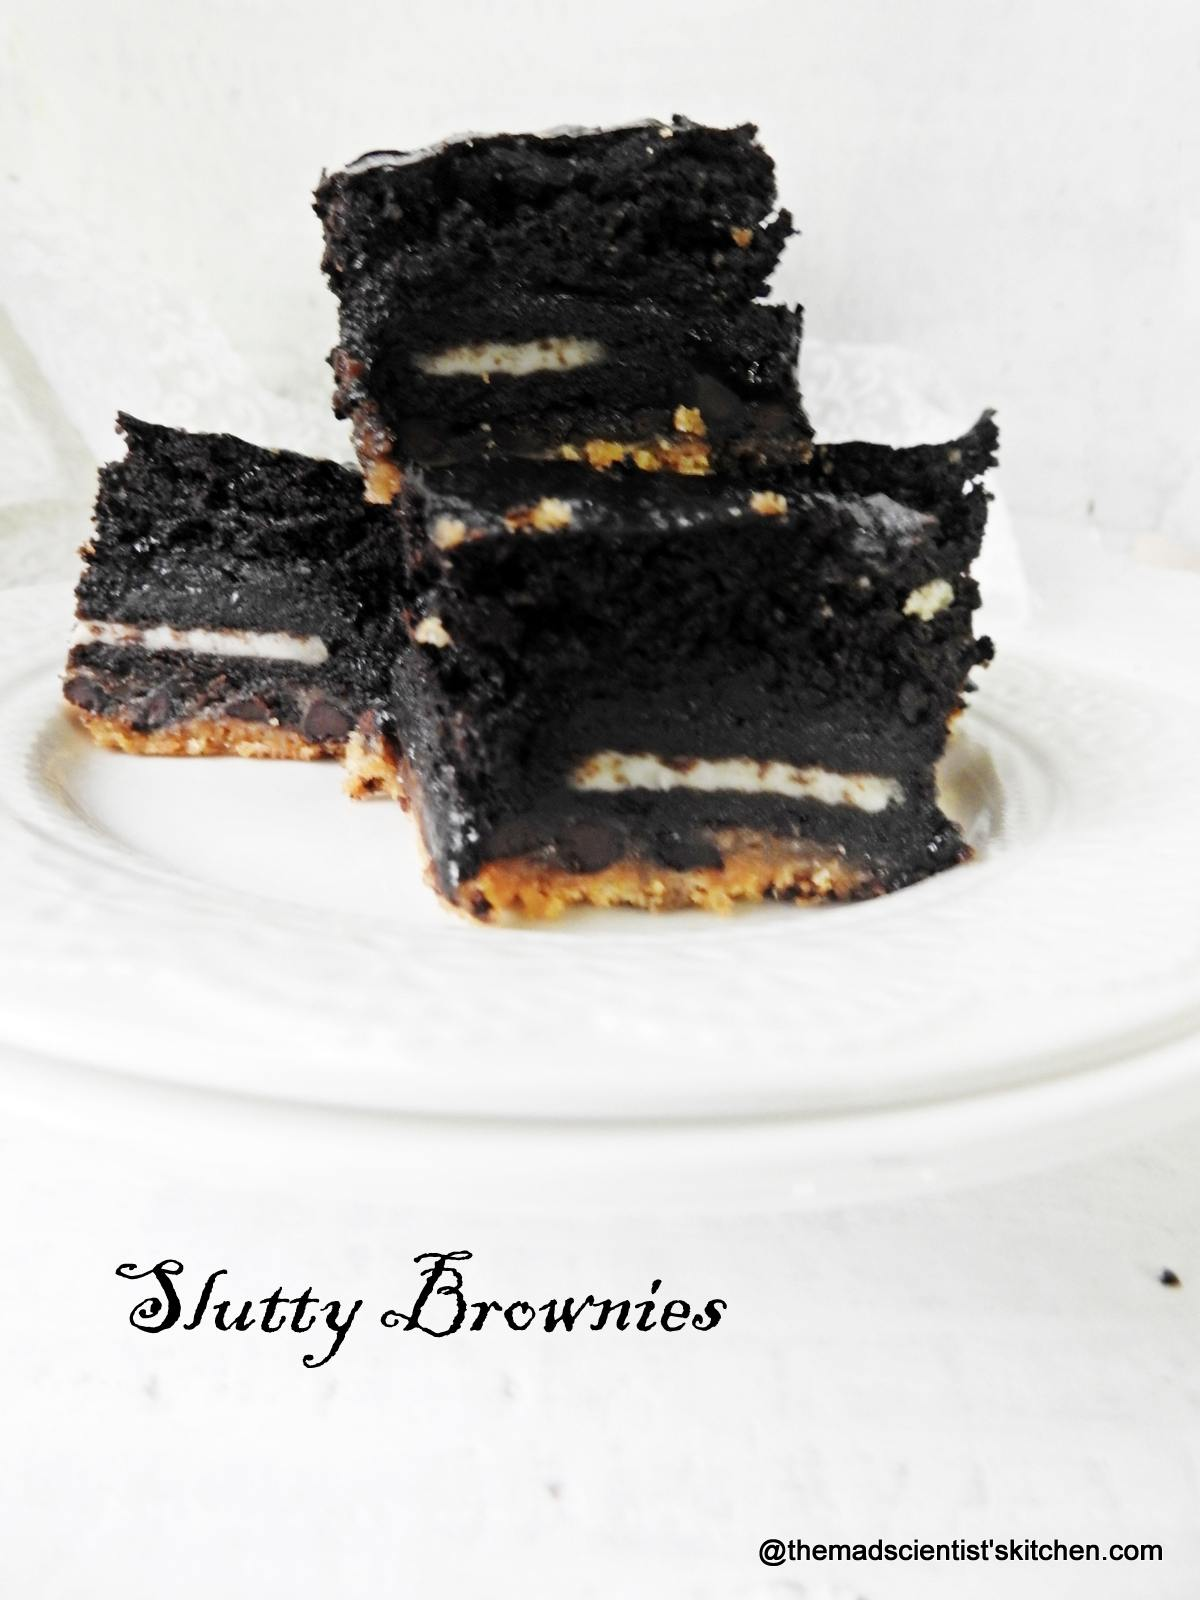 Yummy Slutty Brownies